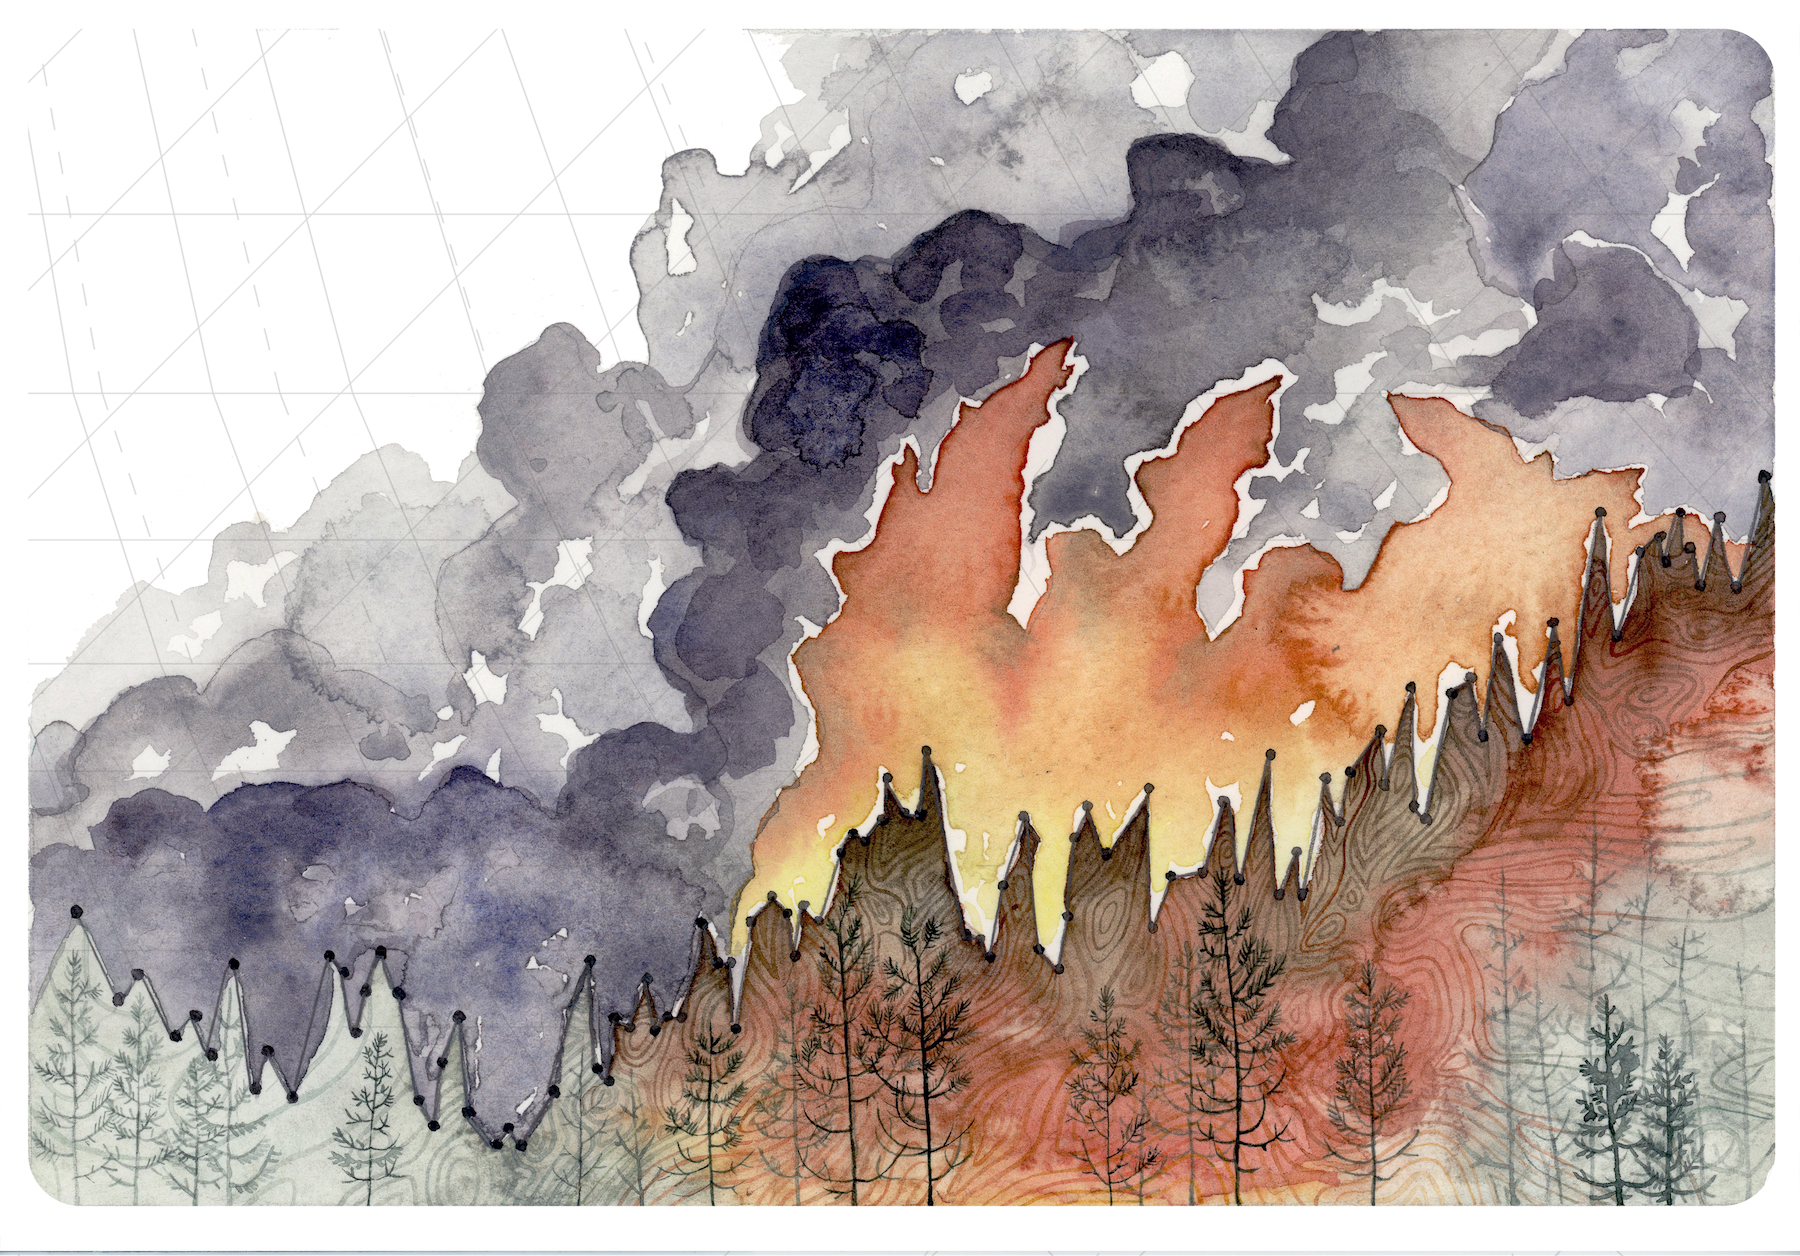 I created a series about some of the major impacts of global warming that I witnessed in Washington State this summer, using scientific data to show how the drought is devastating the state.   Increasing Forest Fire Activity  uses global temperature rise information. Fortunately,   I was not near any of the massive forest fires that raged before, during, and after my two weeks in Washington summer 2015, but I was greeted with many smoke-filled days. On some days, when the winds blew from the fire toward us, the smell and taste of the smoke overpowered my senses, even though the fire was about 100 miles away. As temperatures increase, and drought and drier than average conditions persist, forest fires become a huge threat to the forest, plants, animals—and of course to people and structures.  Reference: http://www.climatecentral.org/gallery/graphics/rise-in-global-temperatures-since-1880